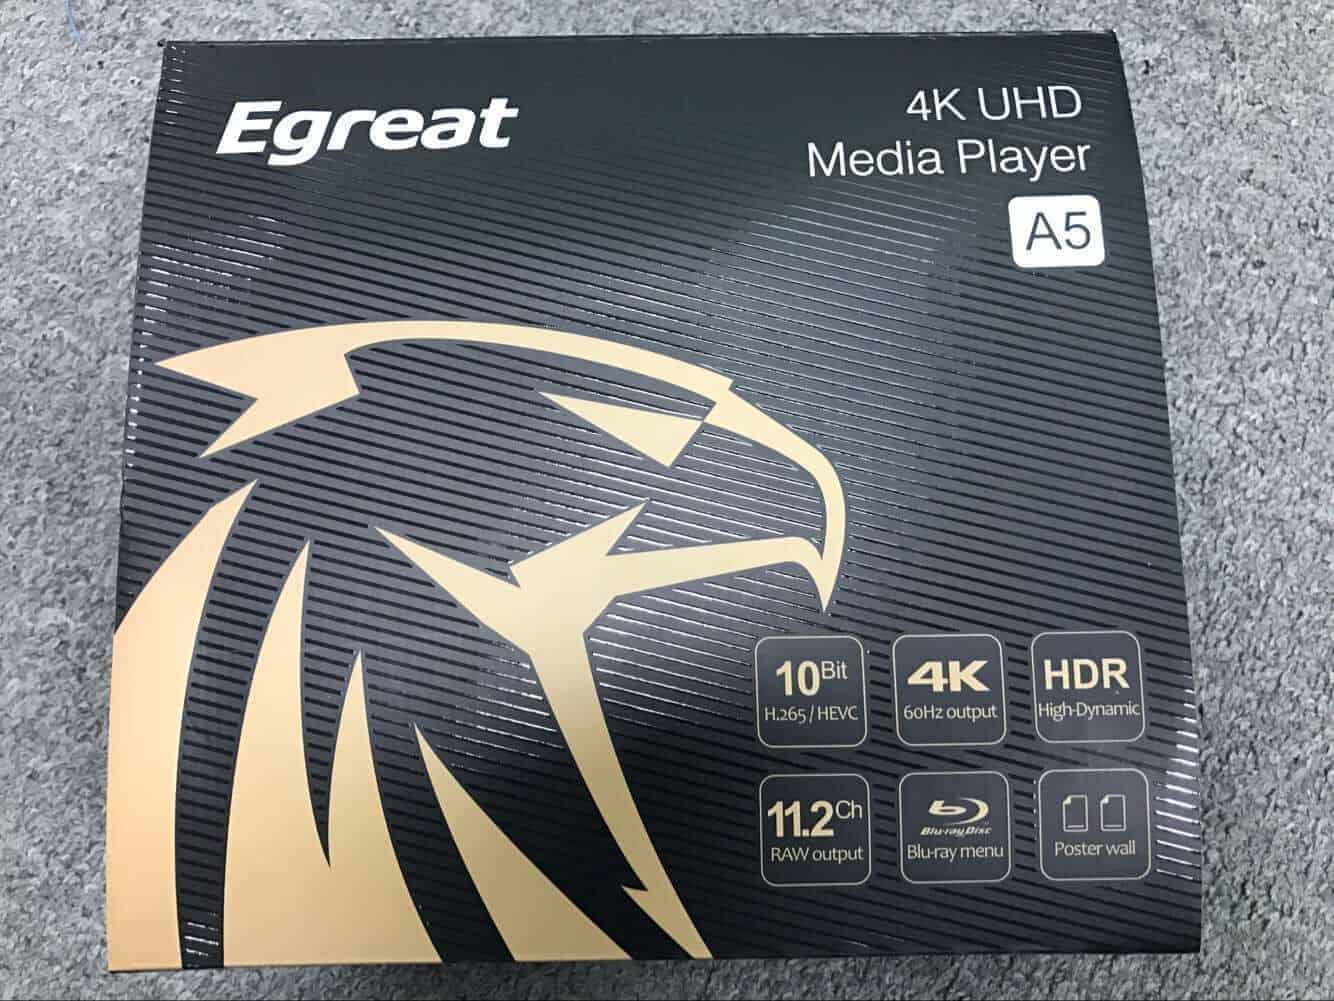 A5-1 Egreat A5 Review